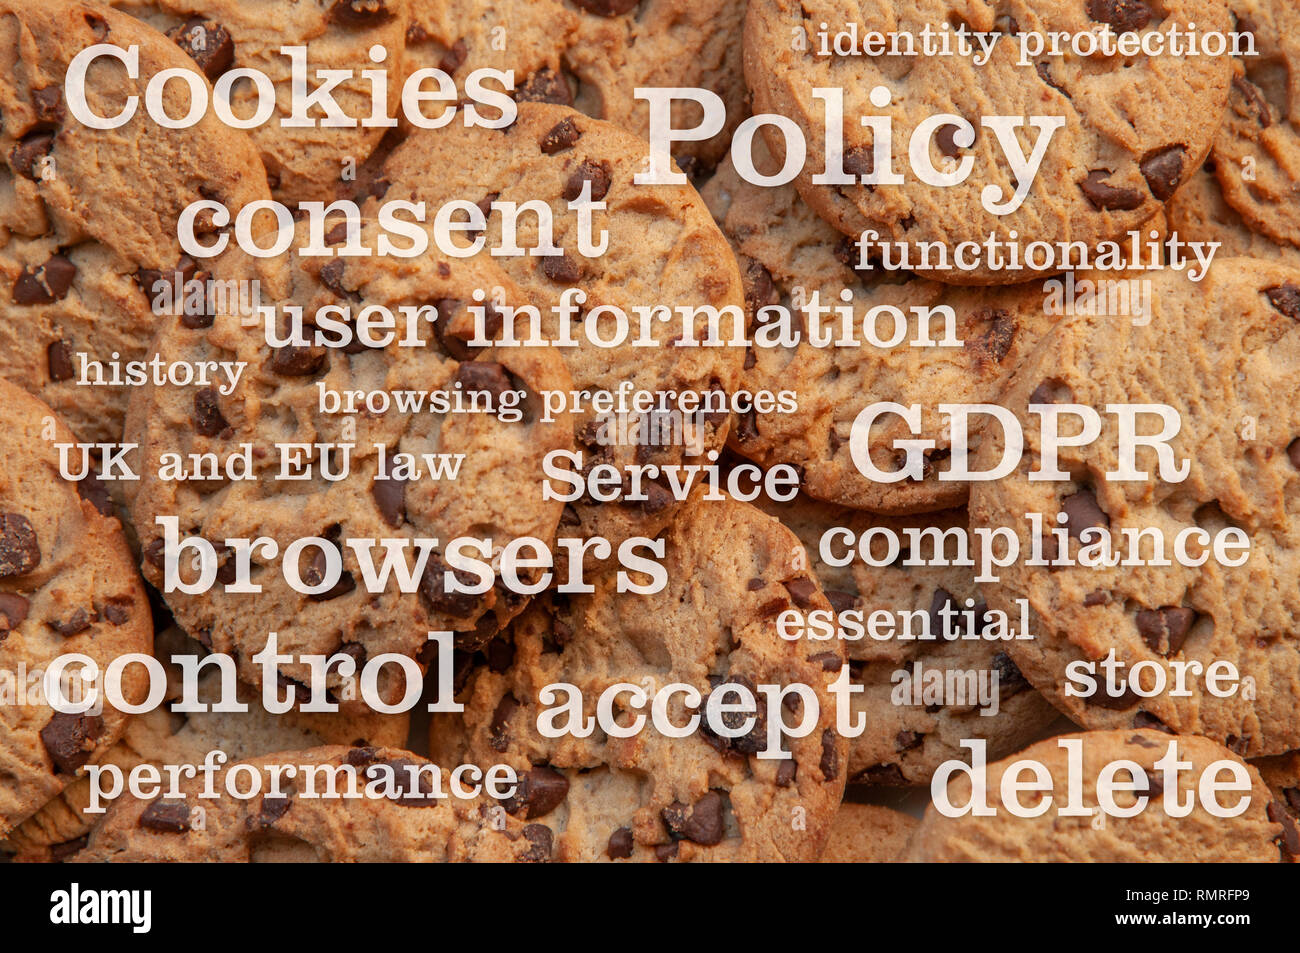 Cookie Policy. An illustrational photo of Cookie (or Cookies) Policy as displayed on websites using cookies for tracking browser usage of its pages. - Stock Image